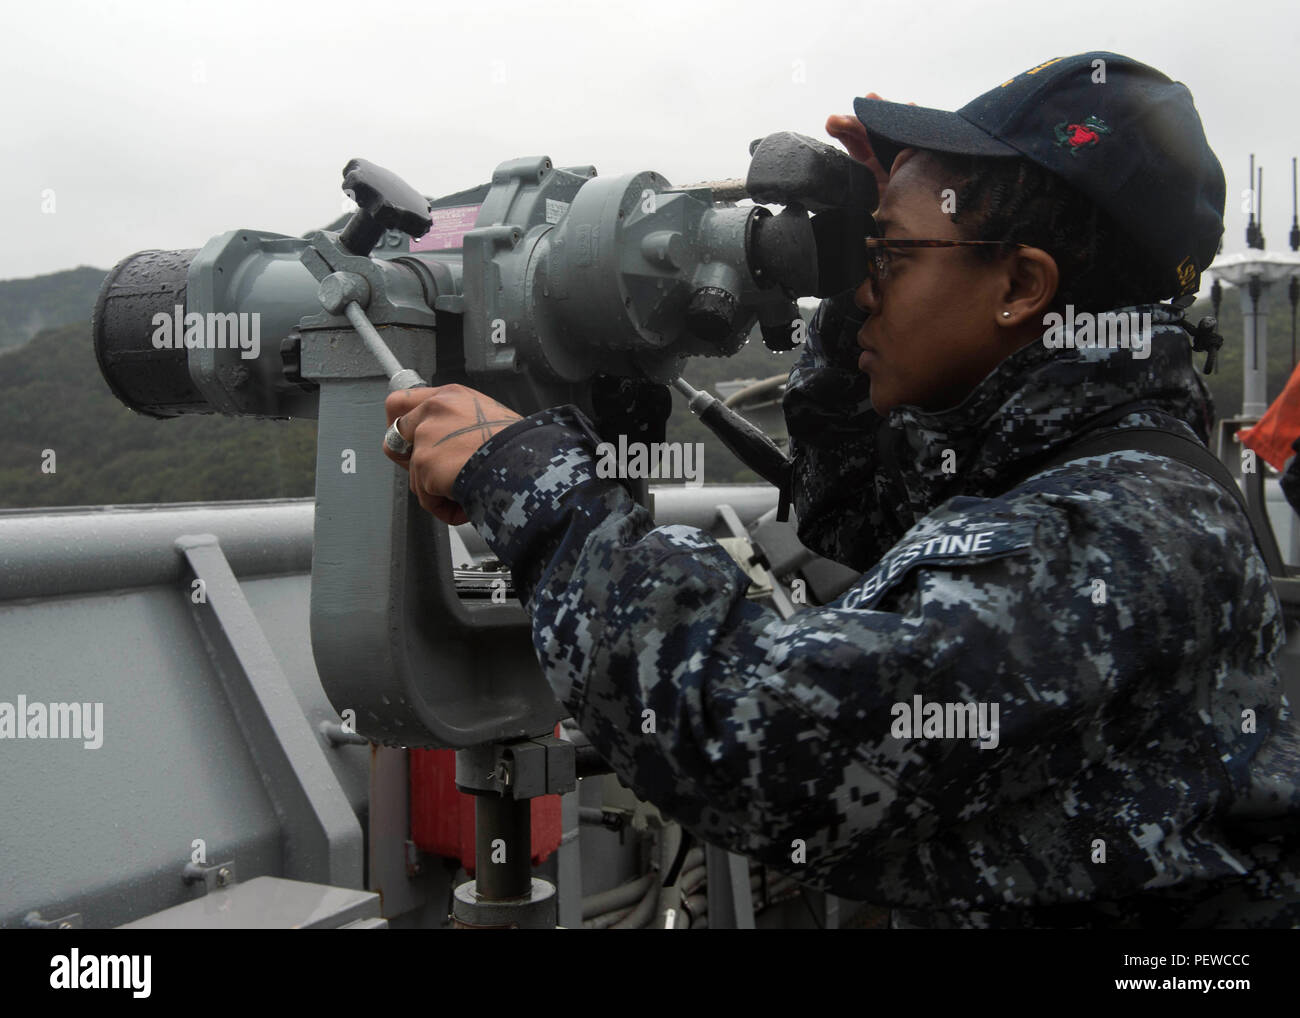 SASEBO BAY, Japan (Jan. 29, 2016) - Operations Specialist 2nd Class Garielle L. Celestine scans the horizon as amphibious dock landing ship USS Germantown (LSD 42) transits the Sasebo Bay. Germantown is assigned to the Bonhomme Richard Amphibious Ready Group (ARG) and is currently underway in the 7th Fleet area of operations. (U.S. Navy photo by Mass Communication Specialist 3rd Class James Vazquez/Released) - Stock Image